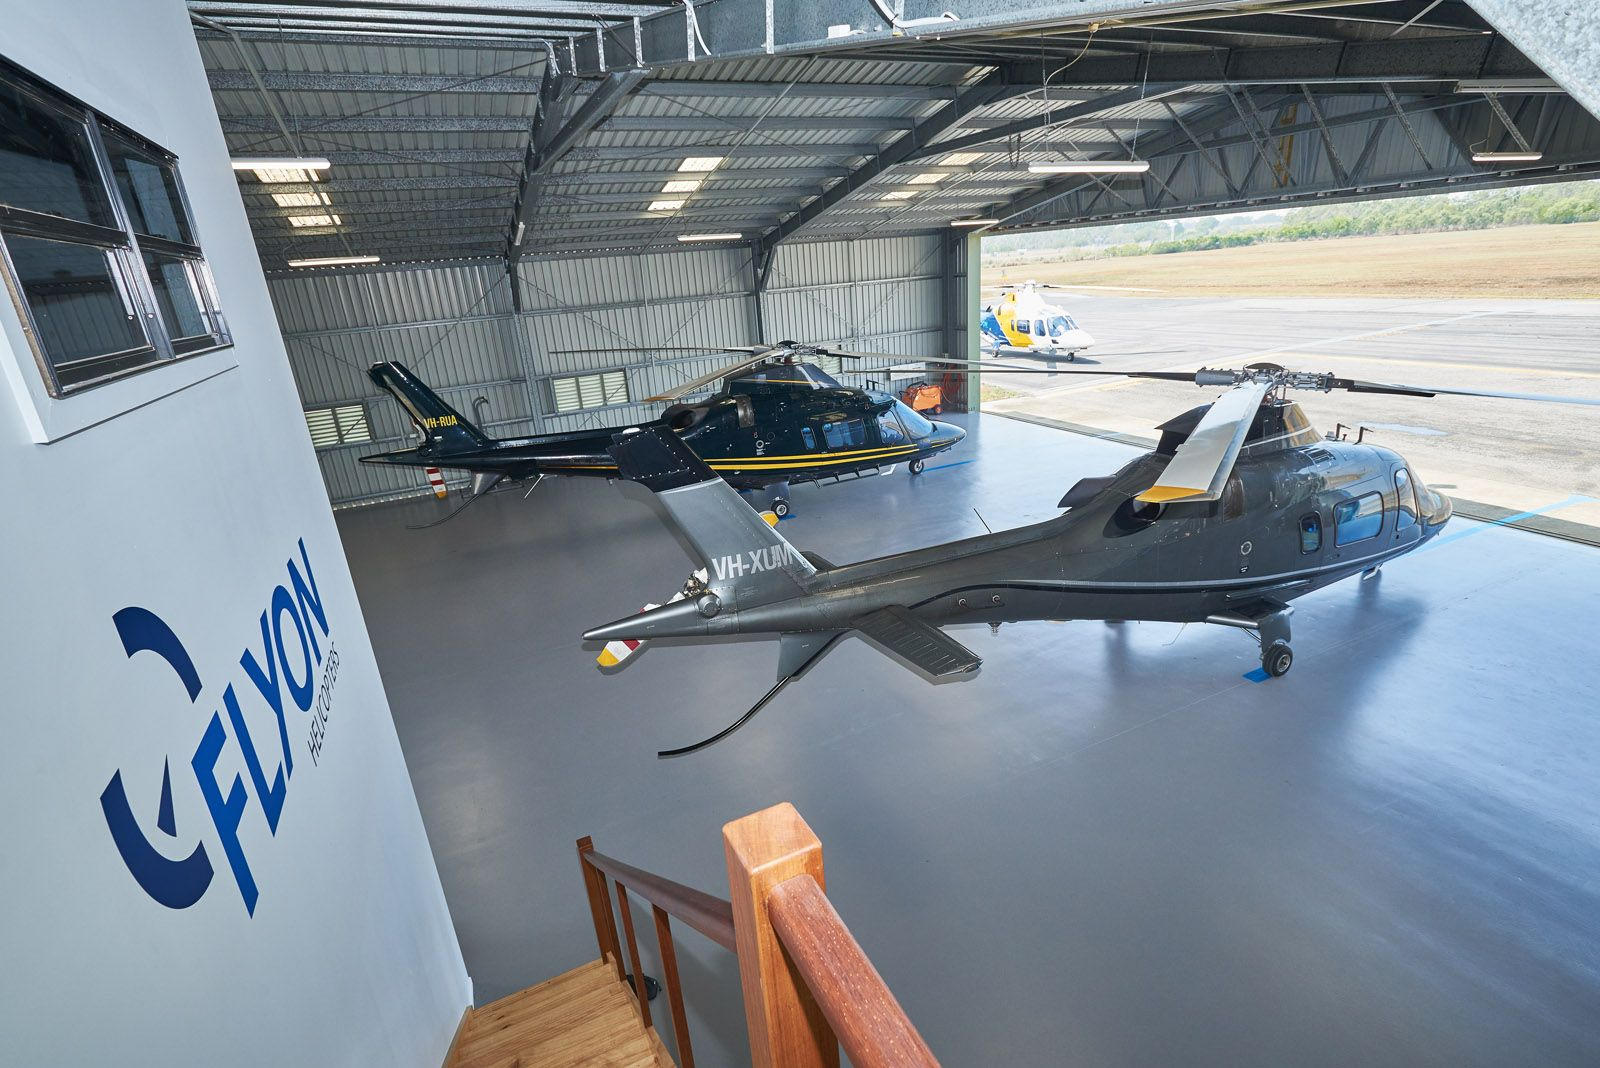 New hanger and facilities